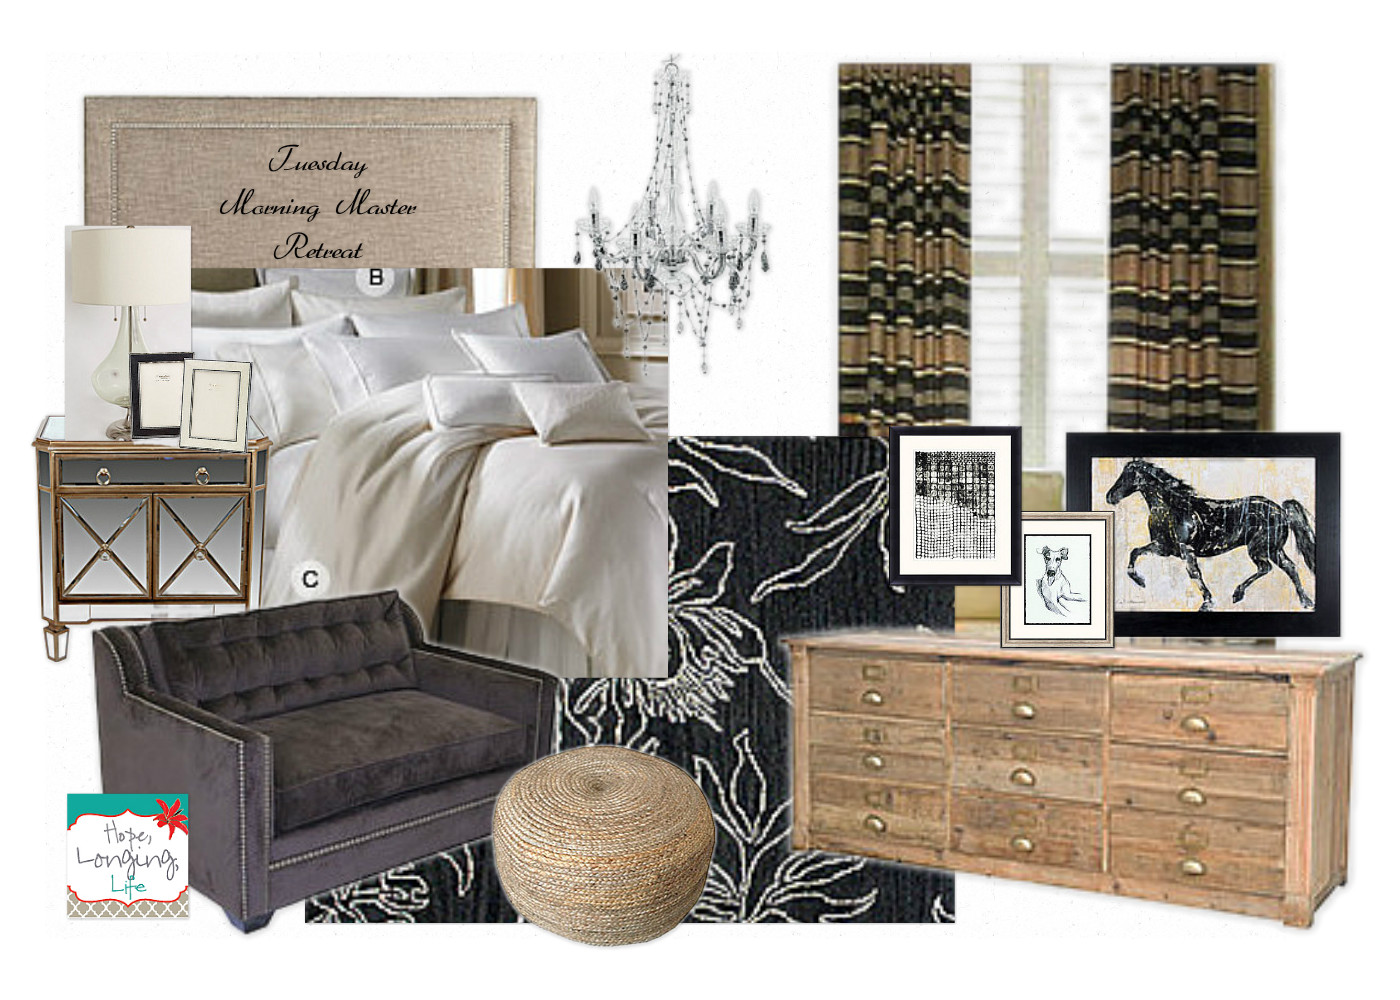 Hope, Longing, Life: Elegant Master Bedroom Design Board - Tuesday